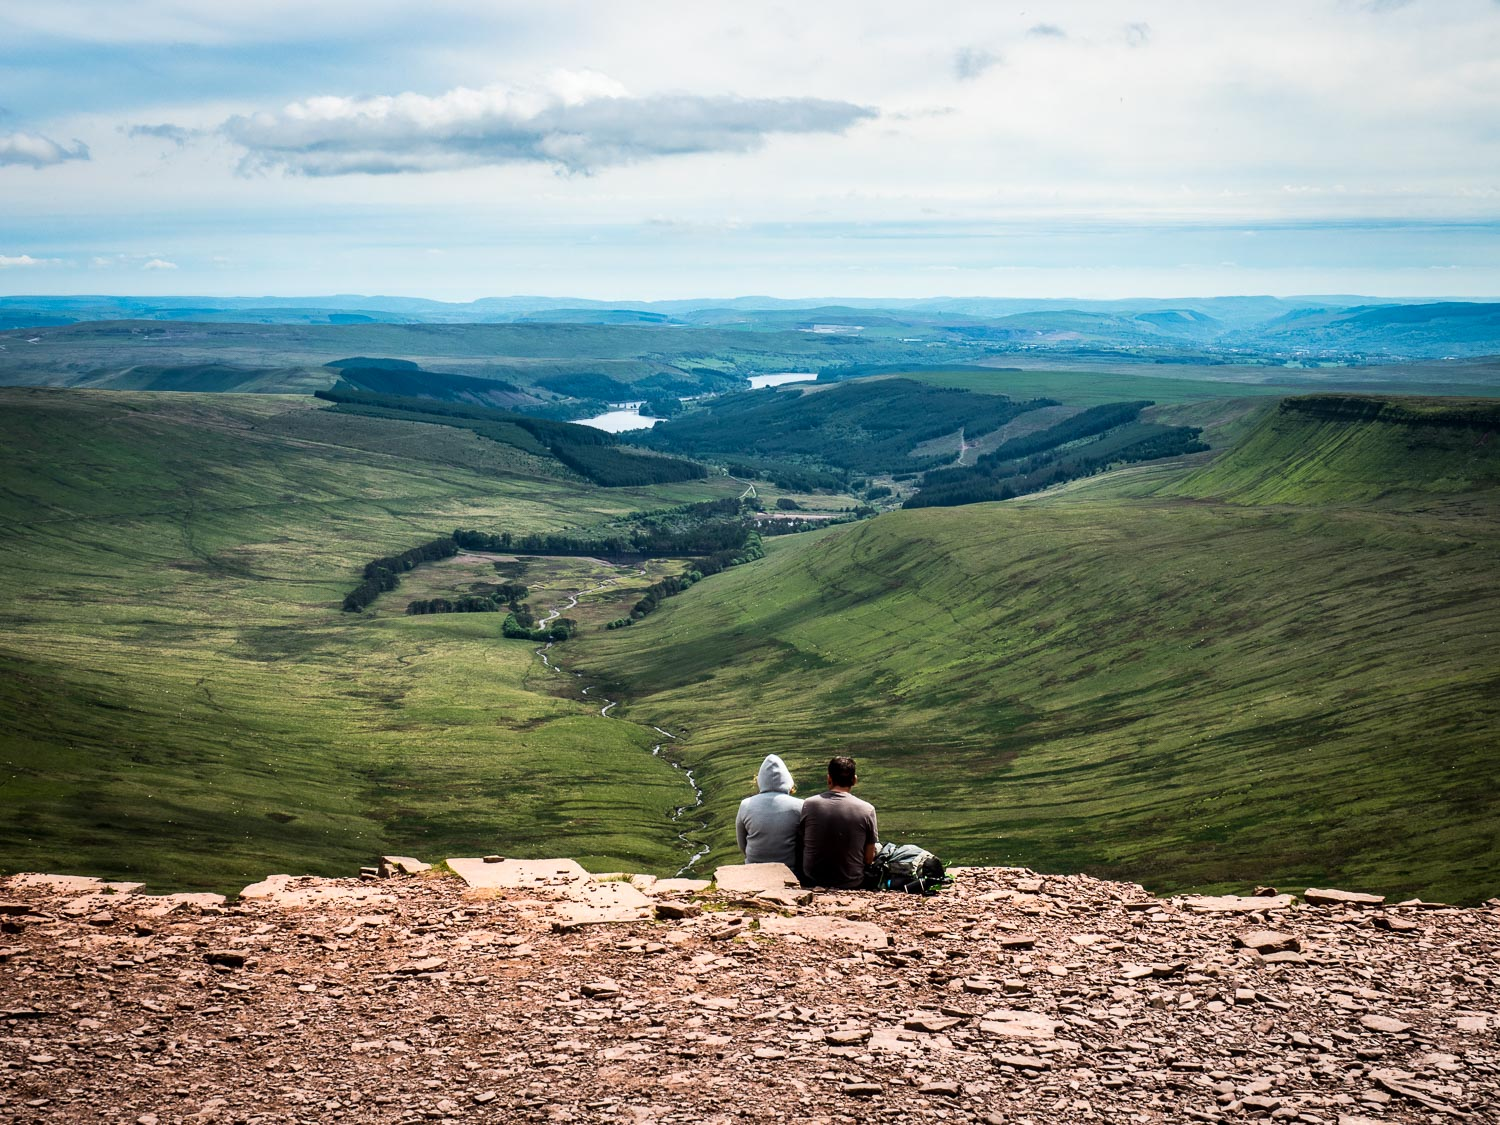 A Landscape Photograph Showing A Couple Sitting On A Ledge On Pen Y Fan Having Lunch, Looking Out At The Neuadd Valley In The Brecon Beacons National Park, Wales.